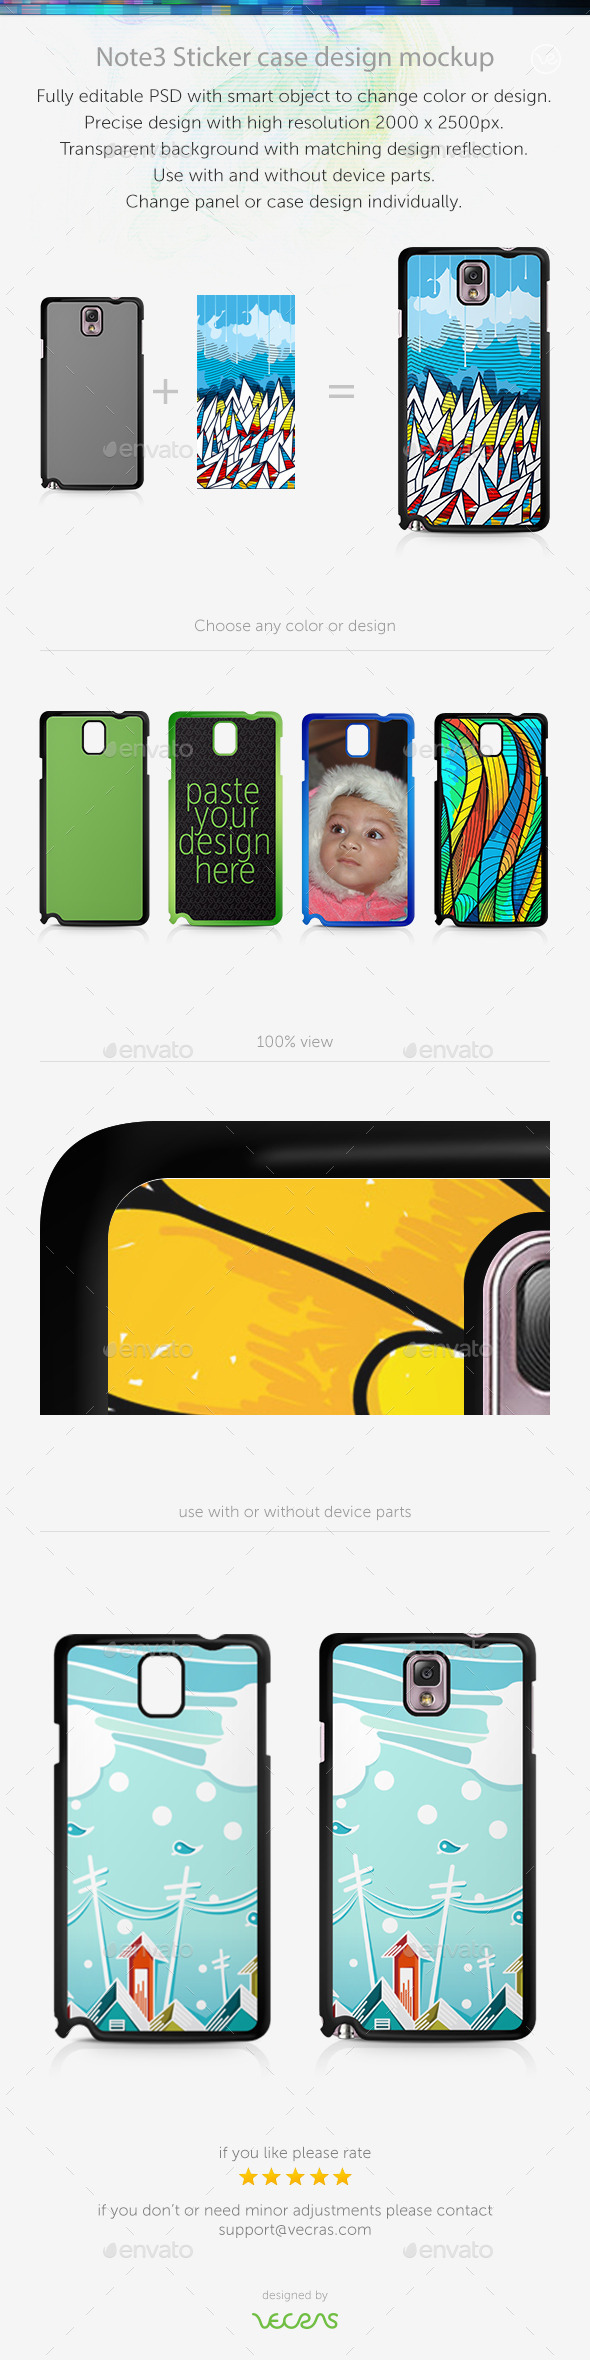 GraphicRiver Note3 Sticker Case Design Mockup 9630187